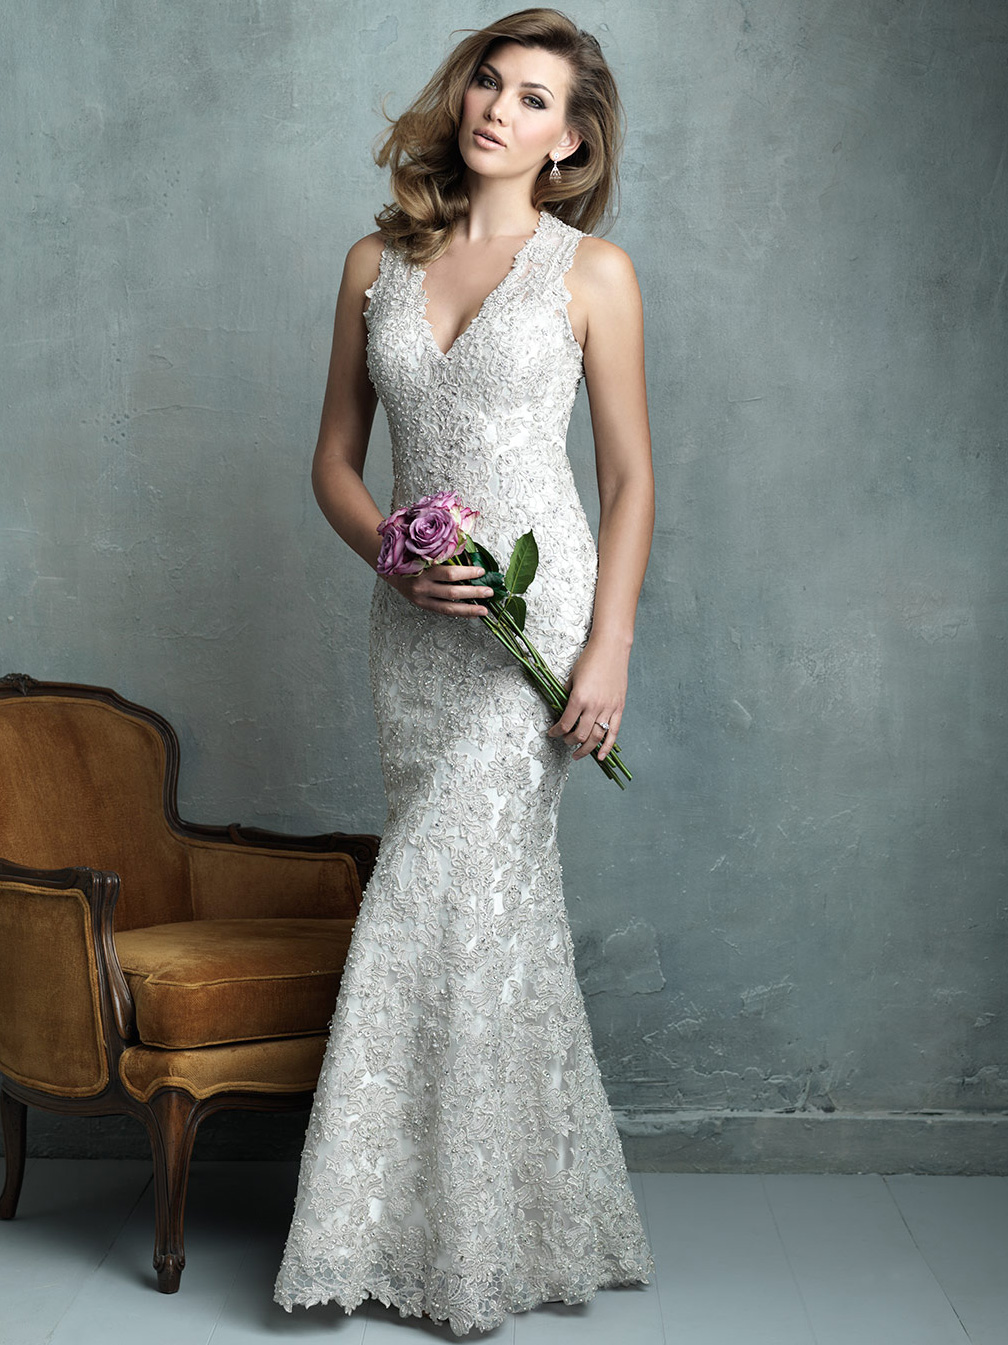 Allure couture lace wedding dress